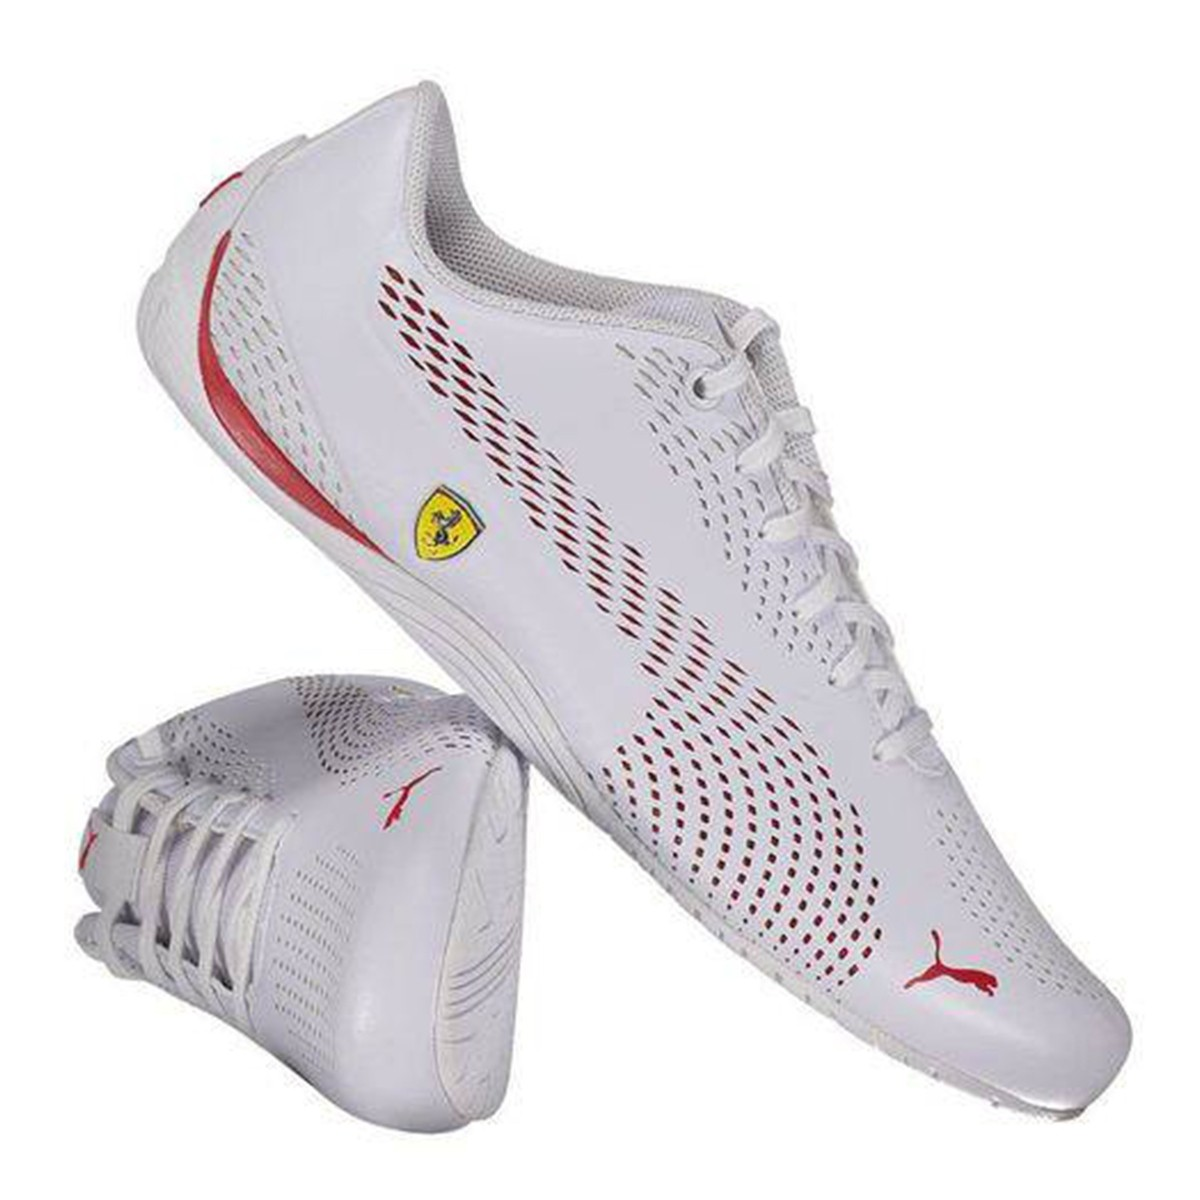 Tênis Puma Ferrari Sf Drift Cat 5 Ultra 2 - Branco - Masculino